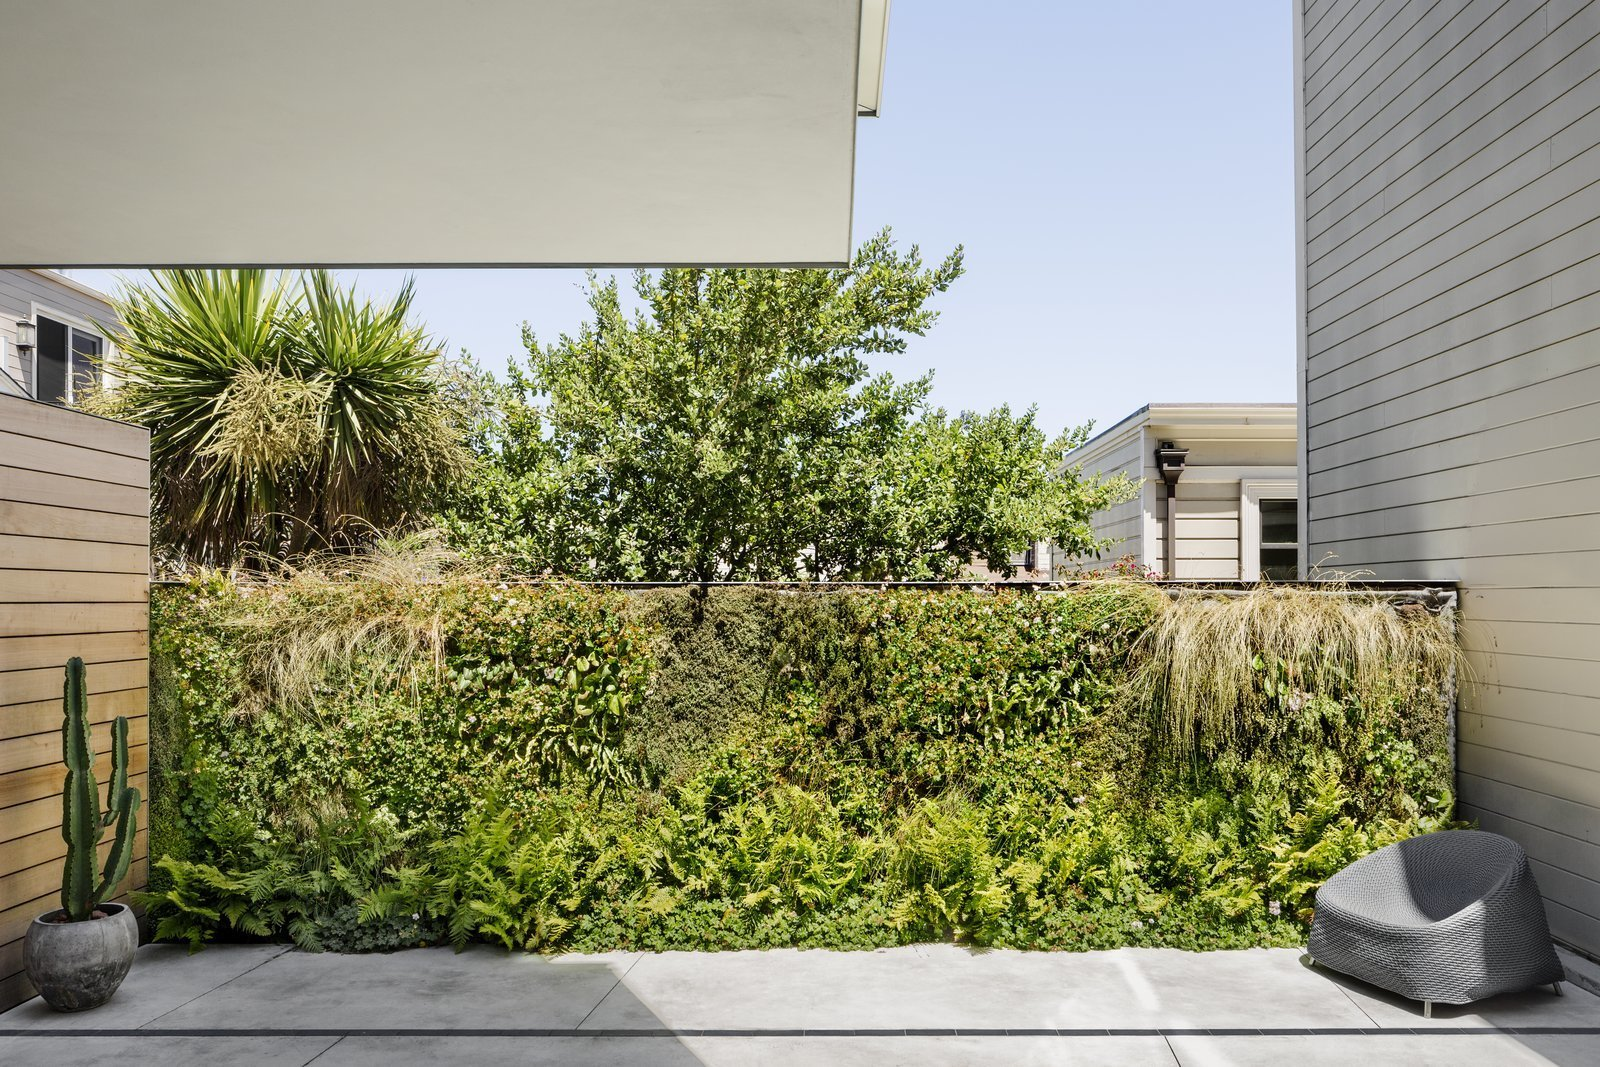 After: Alamo Square Residence backyard with a living wall landscape feature with wall hanging plants